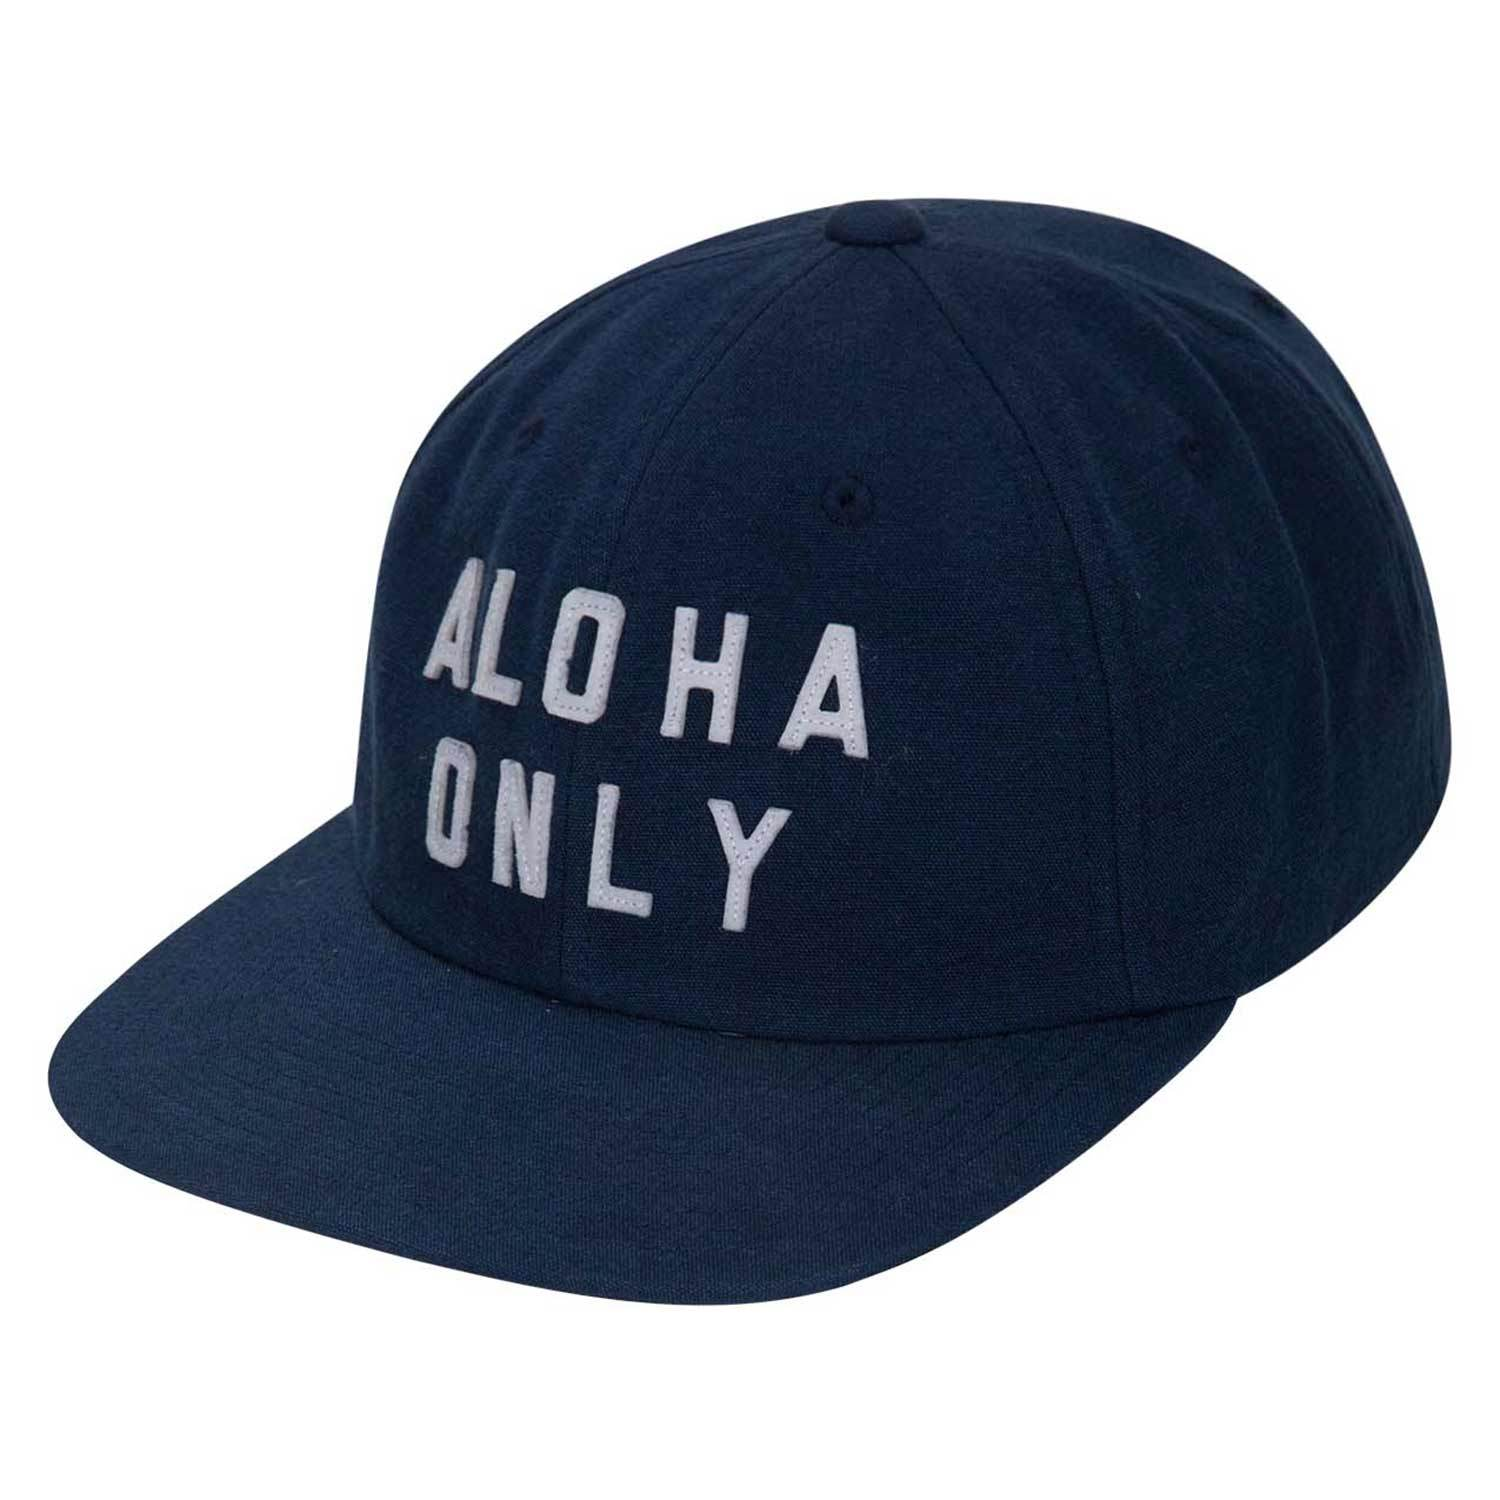 buy online 924c4 bb2c0 ... wholesale aloha only washed hat 2e399 2c2f8